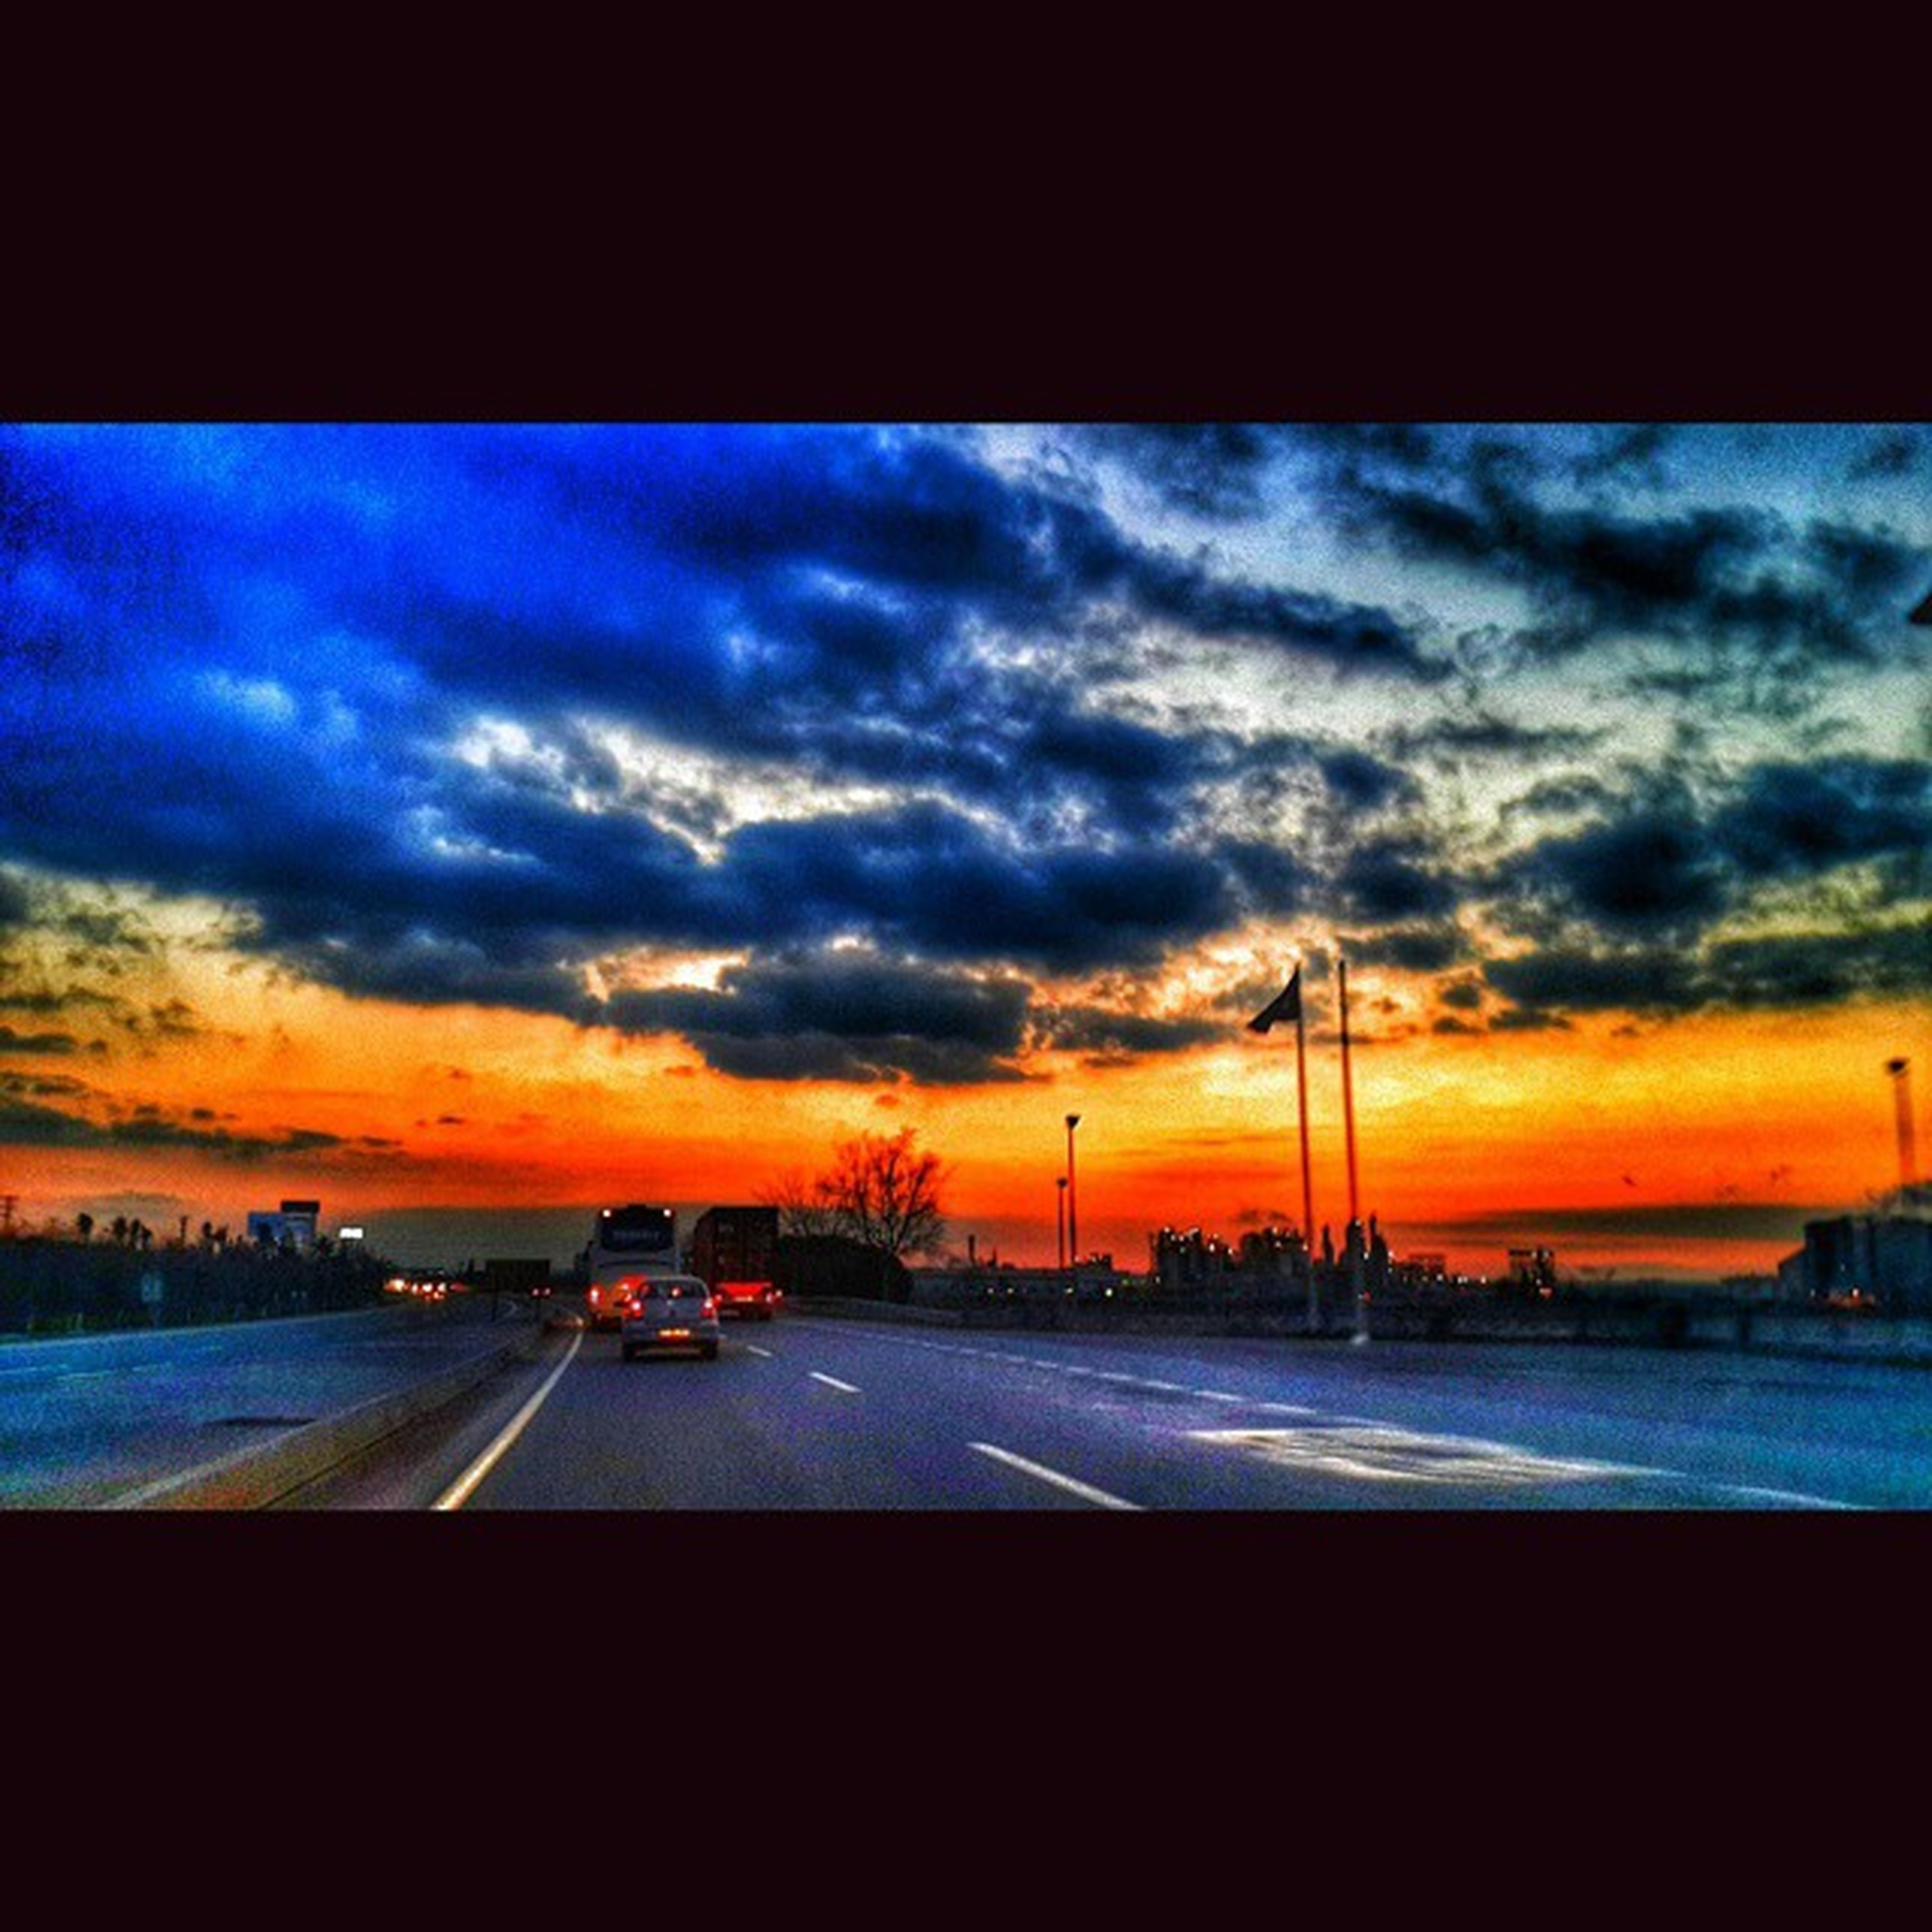 sunset, transportation, sky, cloud - sky, orange color, mode of transport, dramatic sky, road, cloudy, car, cloud, transfer print, scenics, land vehicle, beauty in nature, auto post production filter, dusk, nature, travel, silhouette